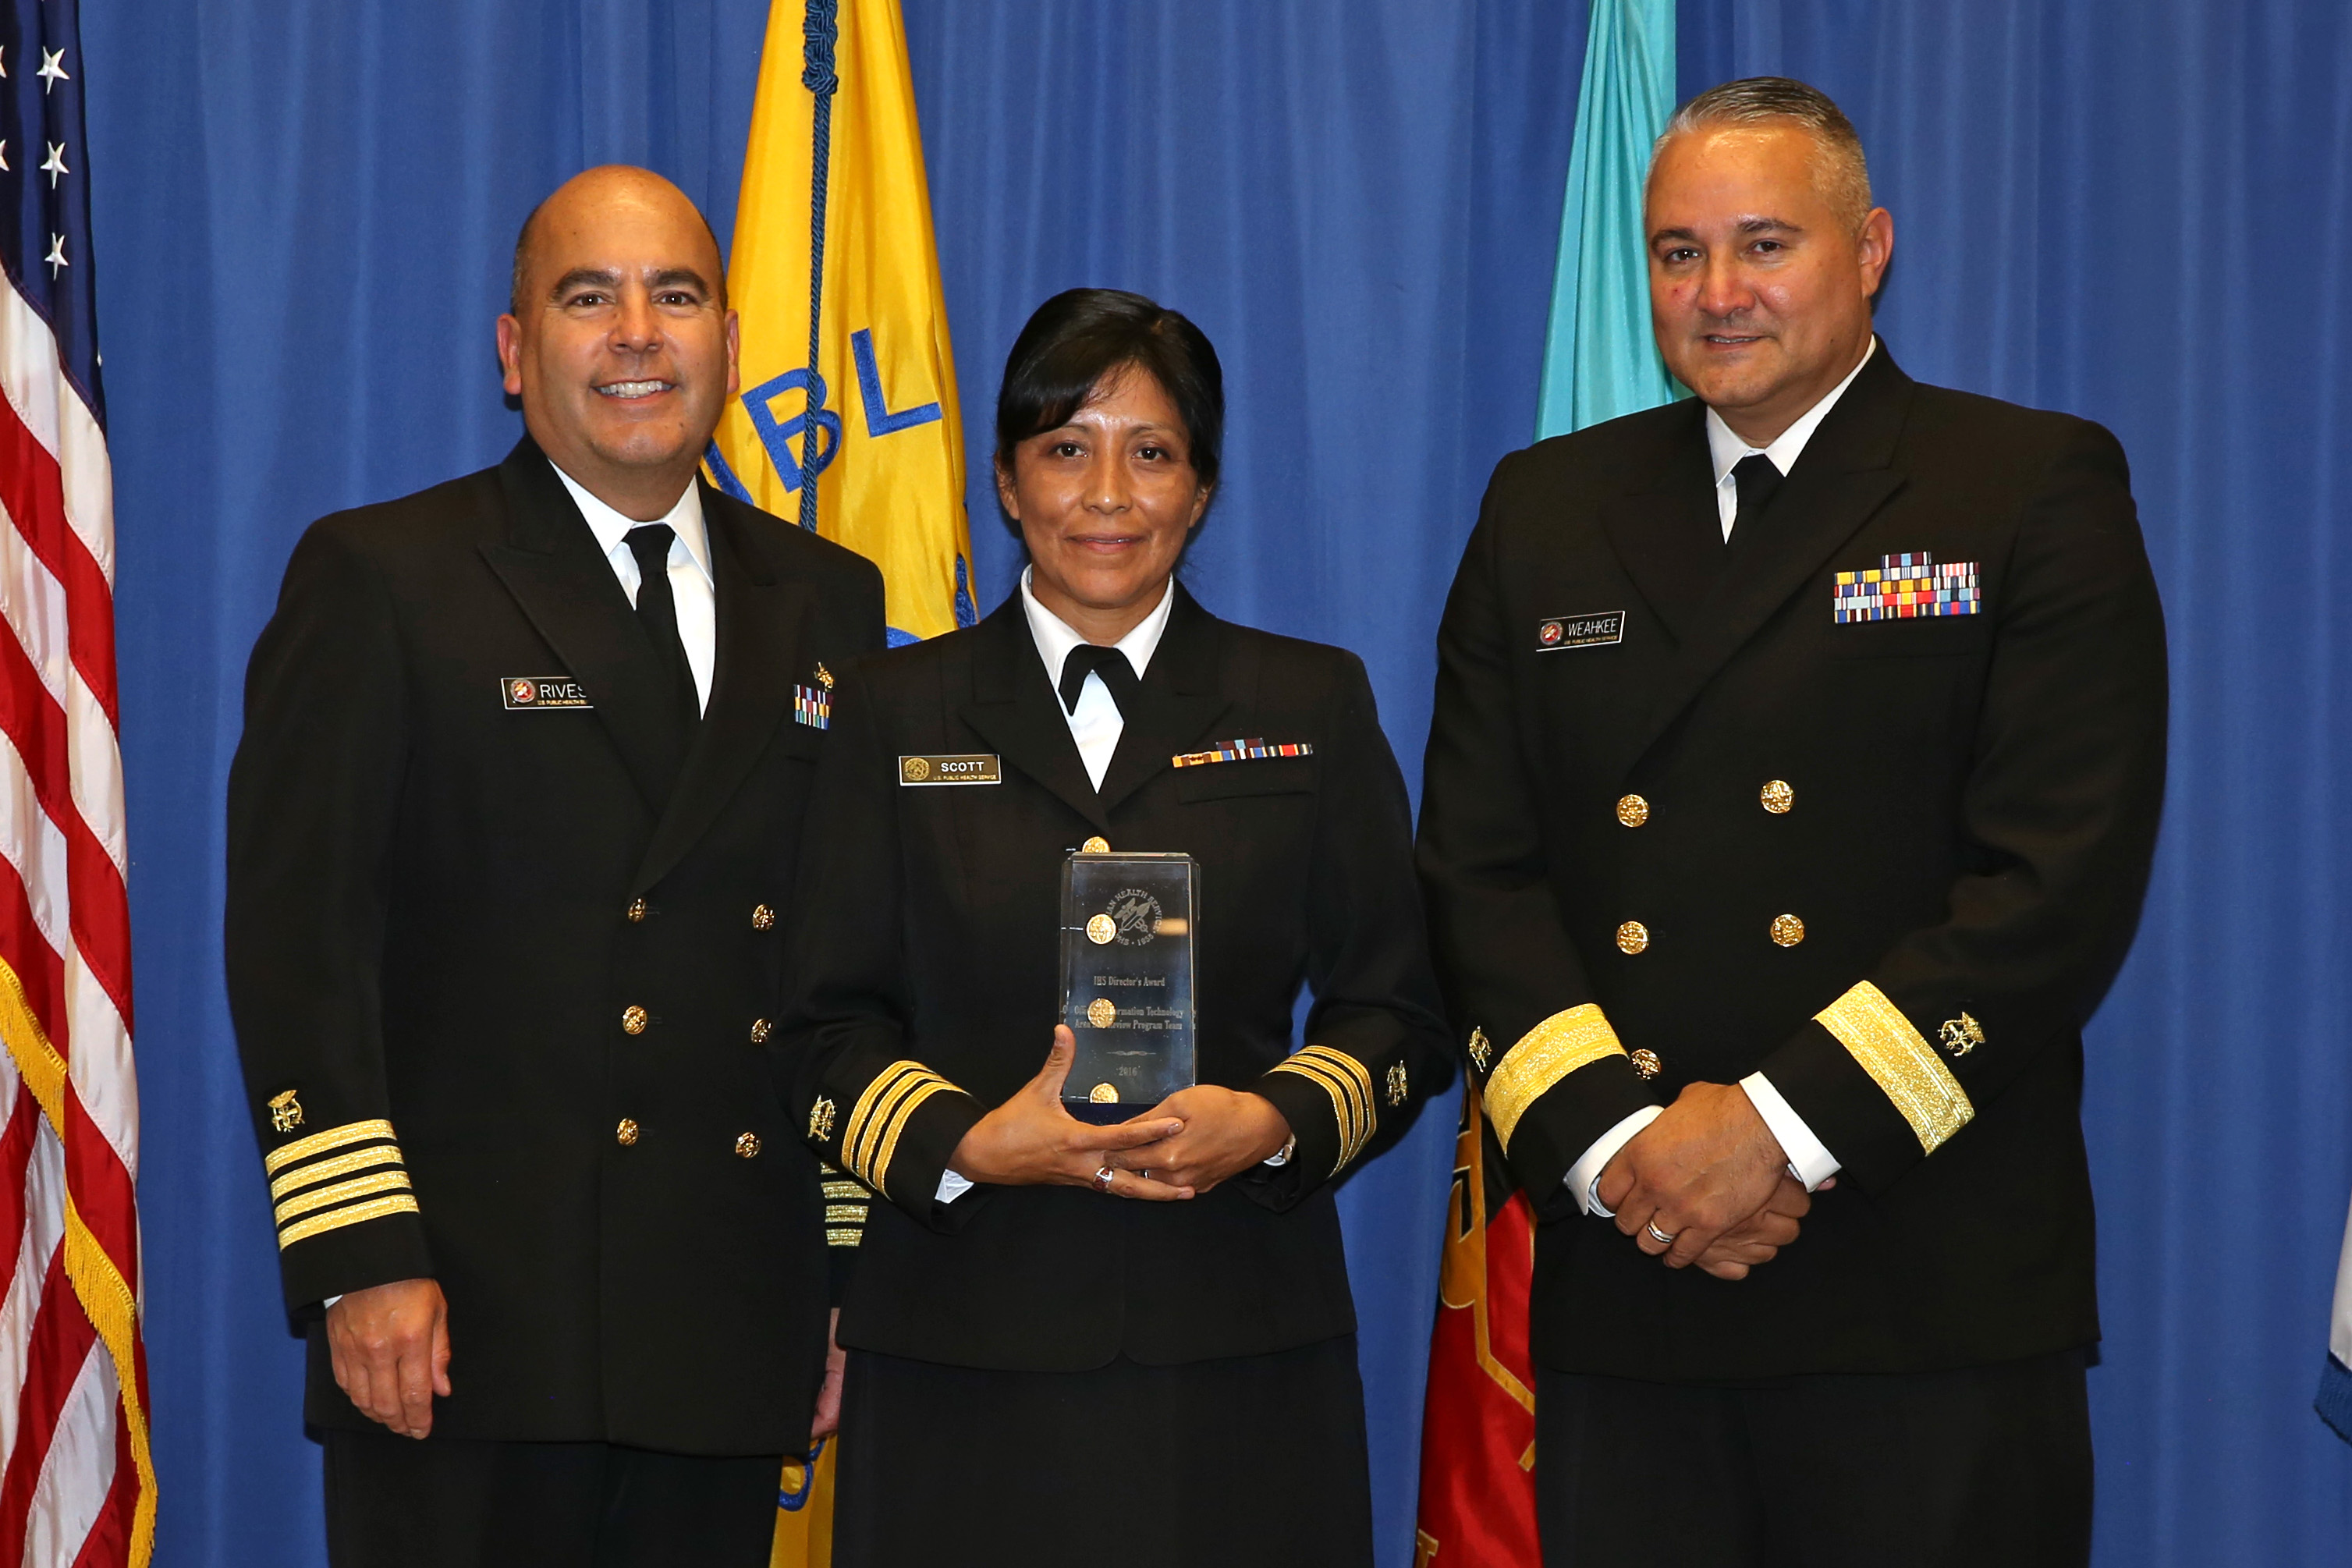 2016 Director's Award - Team - LCDR Andrea Scott on behalf of Office of Information Technology Area Site Review Program Team (HQ)